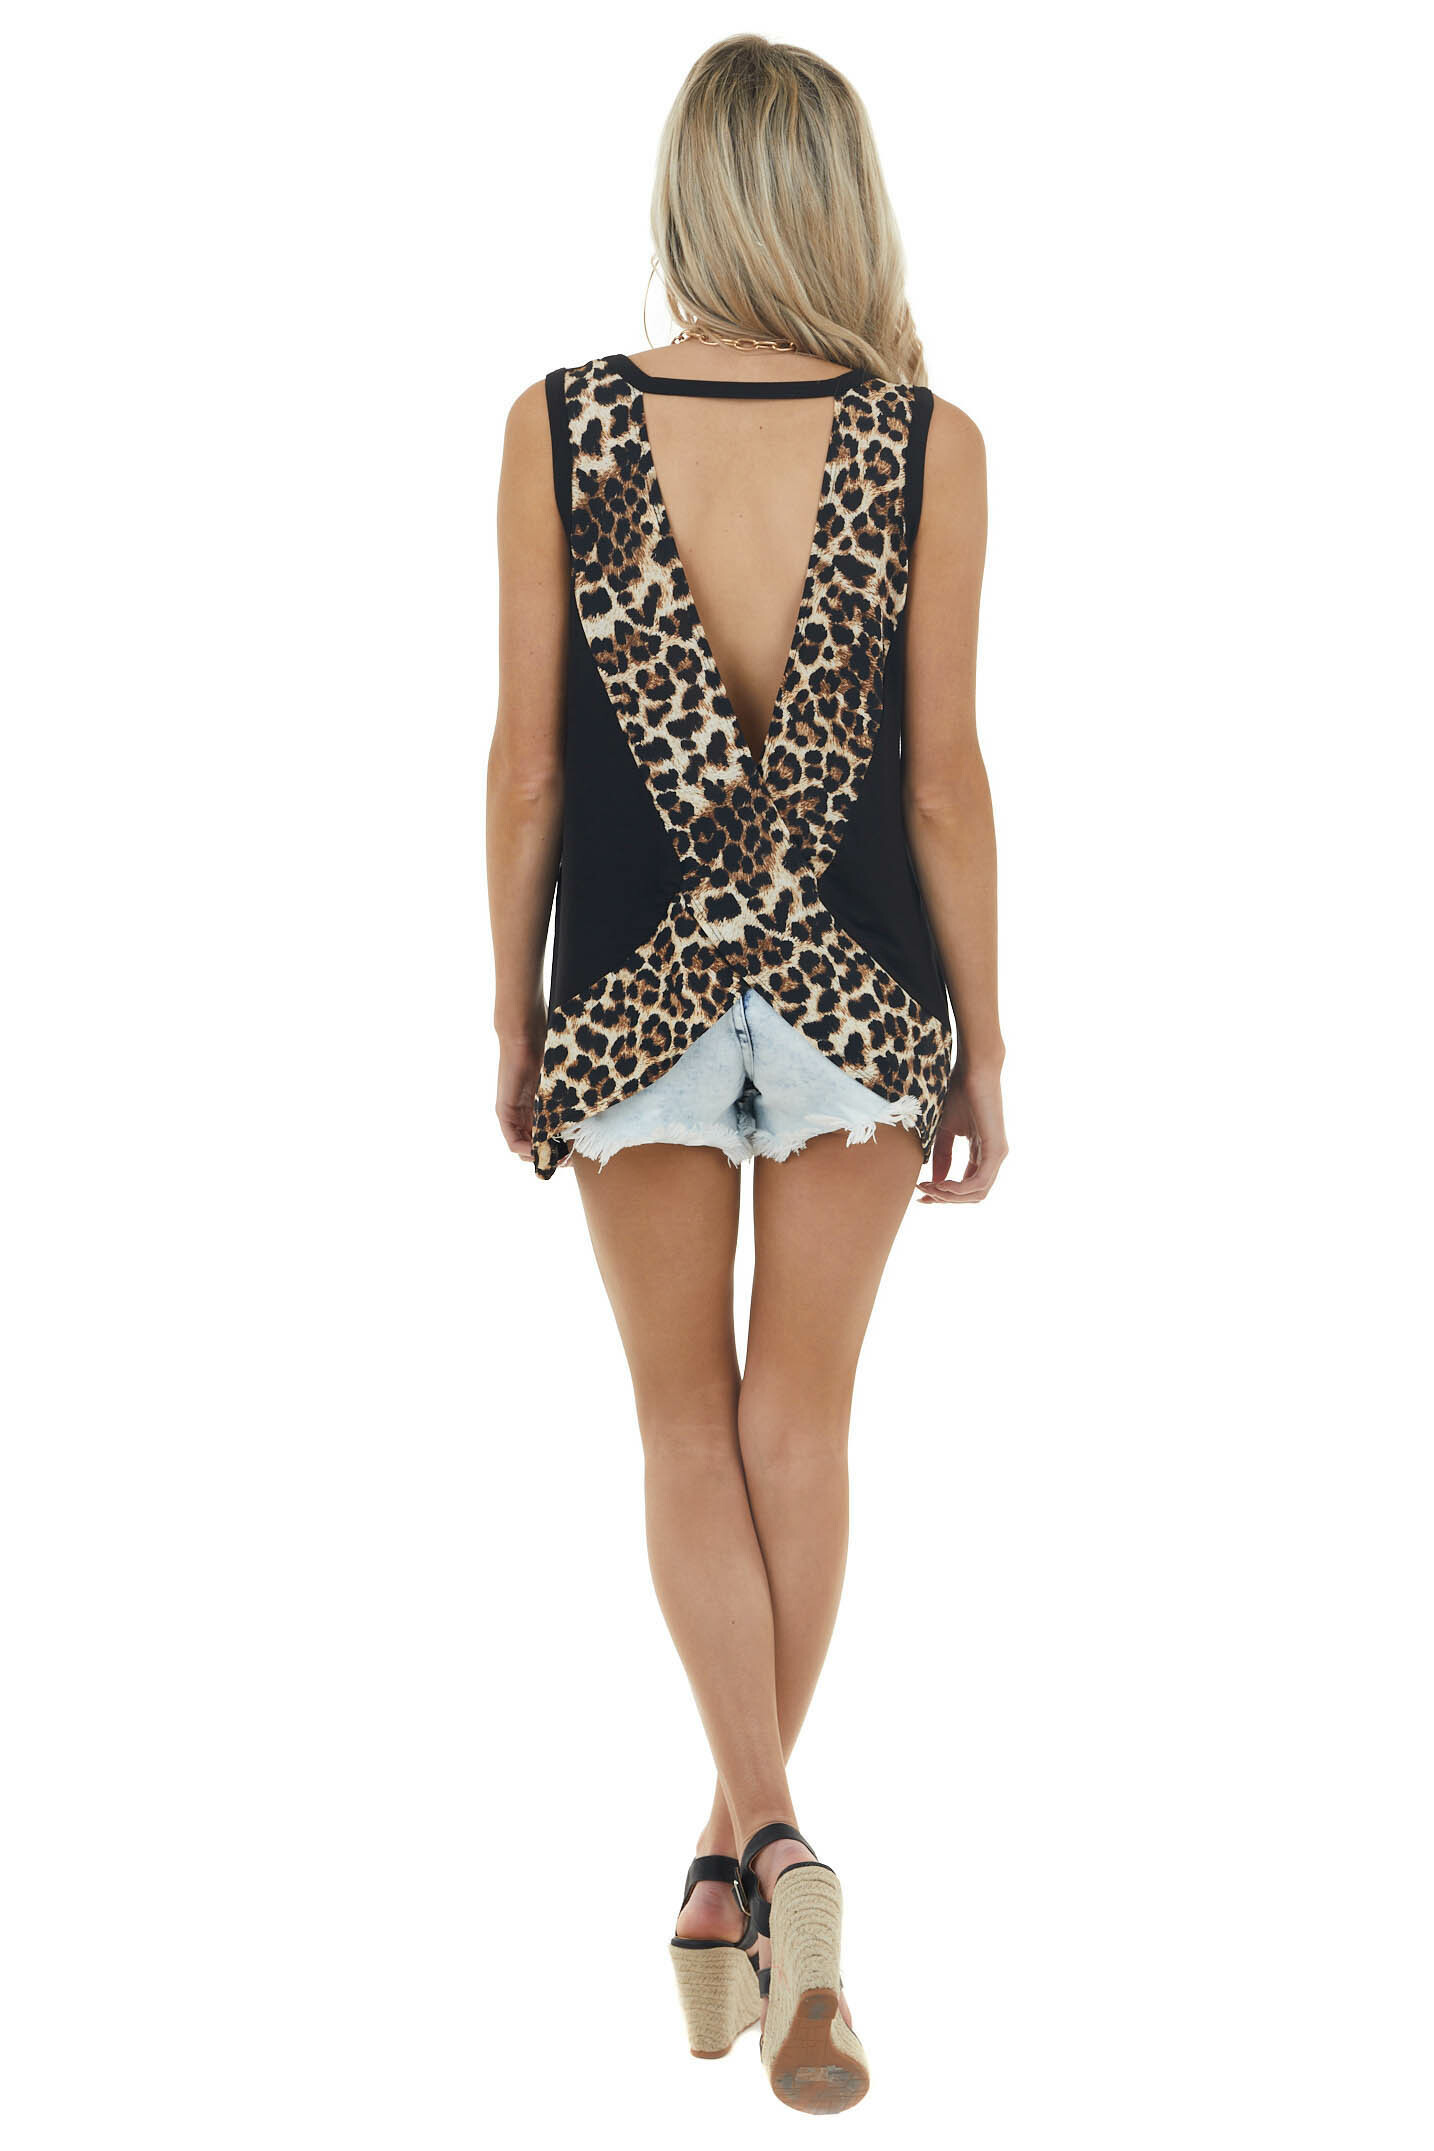 Black Sleeveless Top with Crossed Leopard Print Open Back